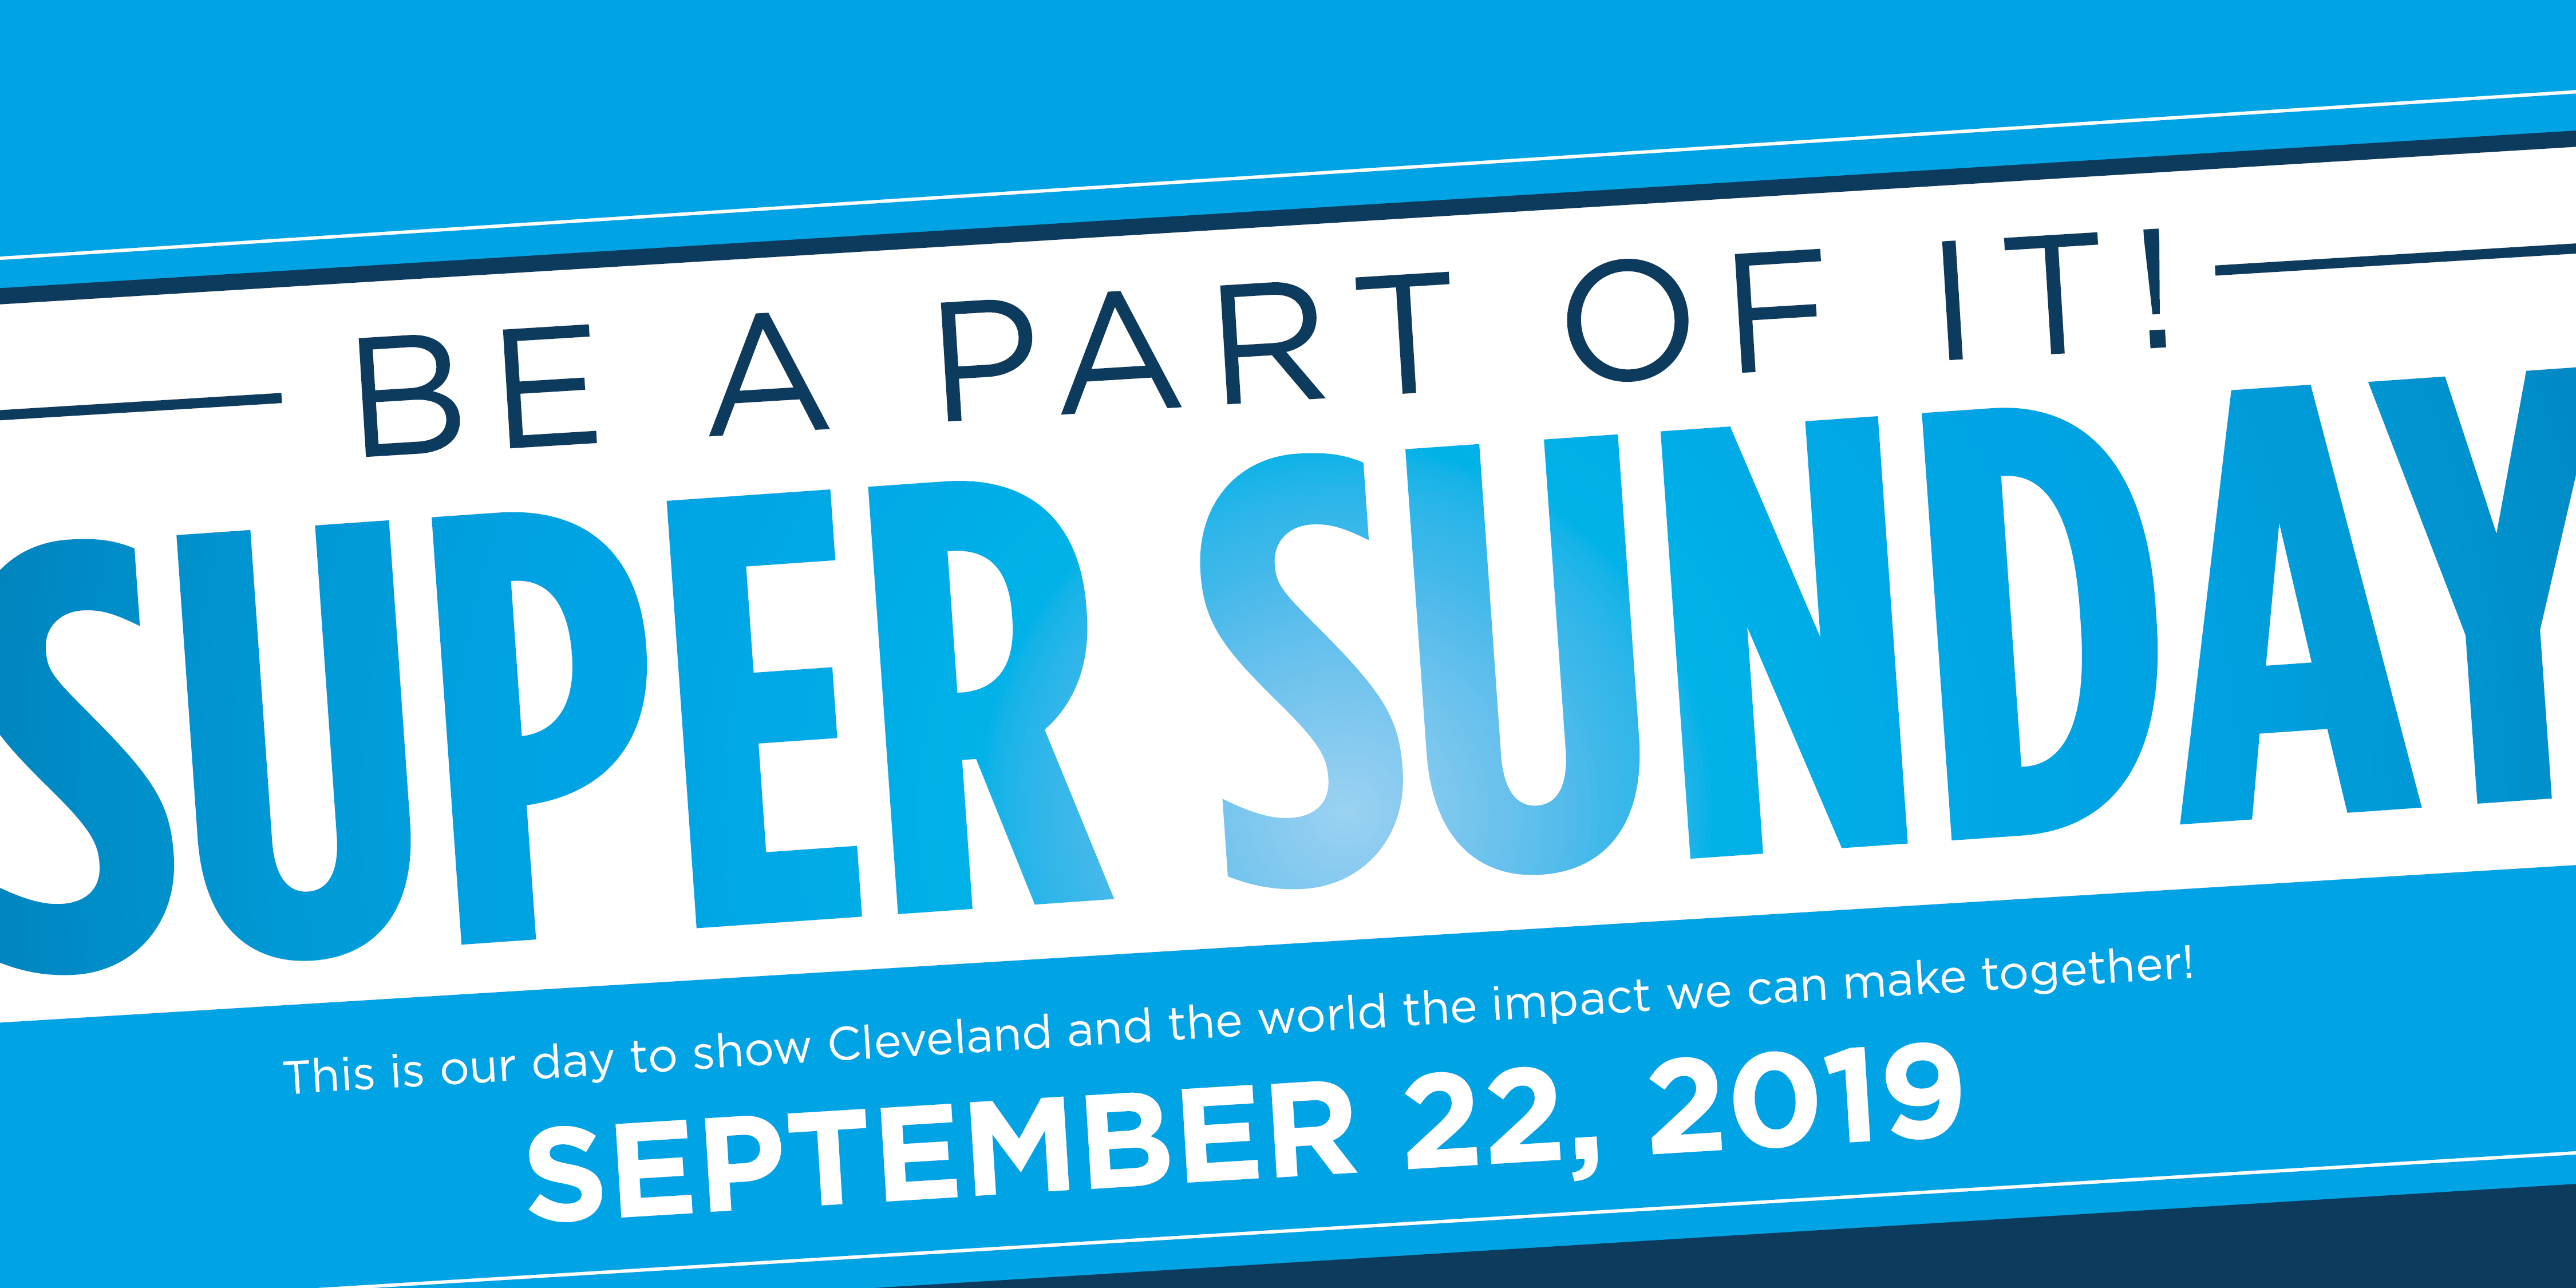 Jewish Federation Invites Community to Make an Impact Together on 'Super Sunday'